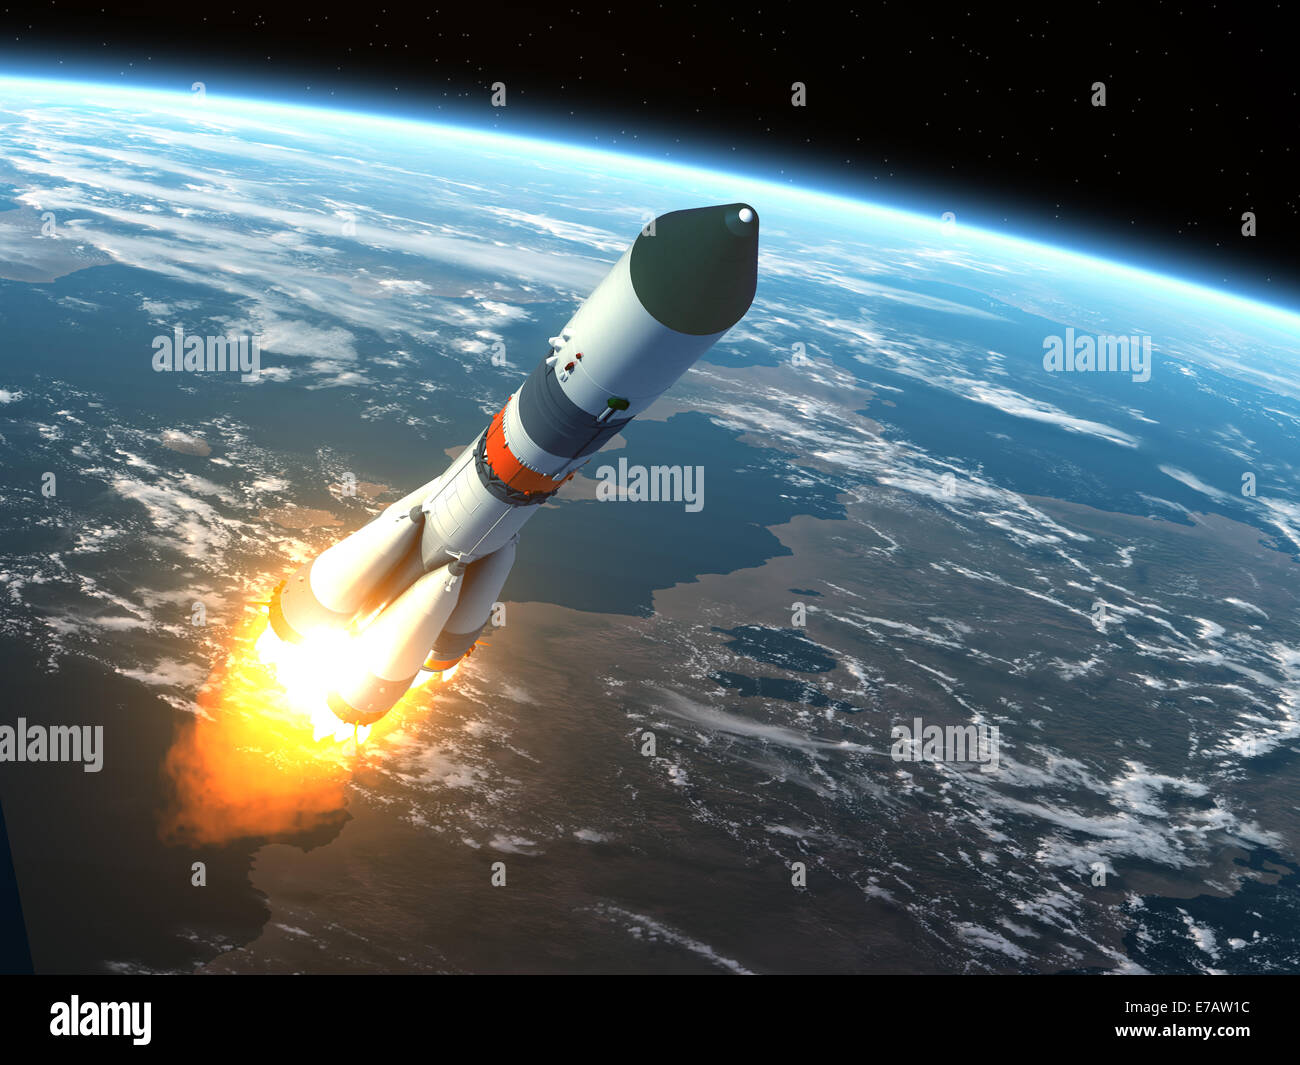 Cargo Rocket Takes Off - Stock Image